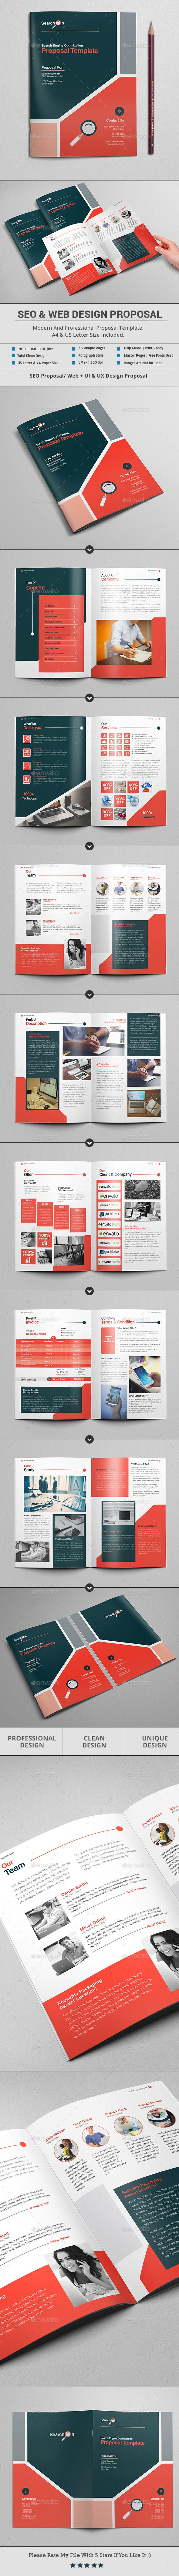 Seo And Web Design Proposal Template By Al Mamun Specification